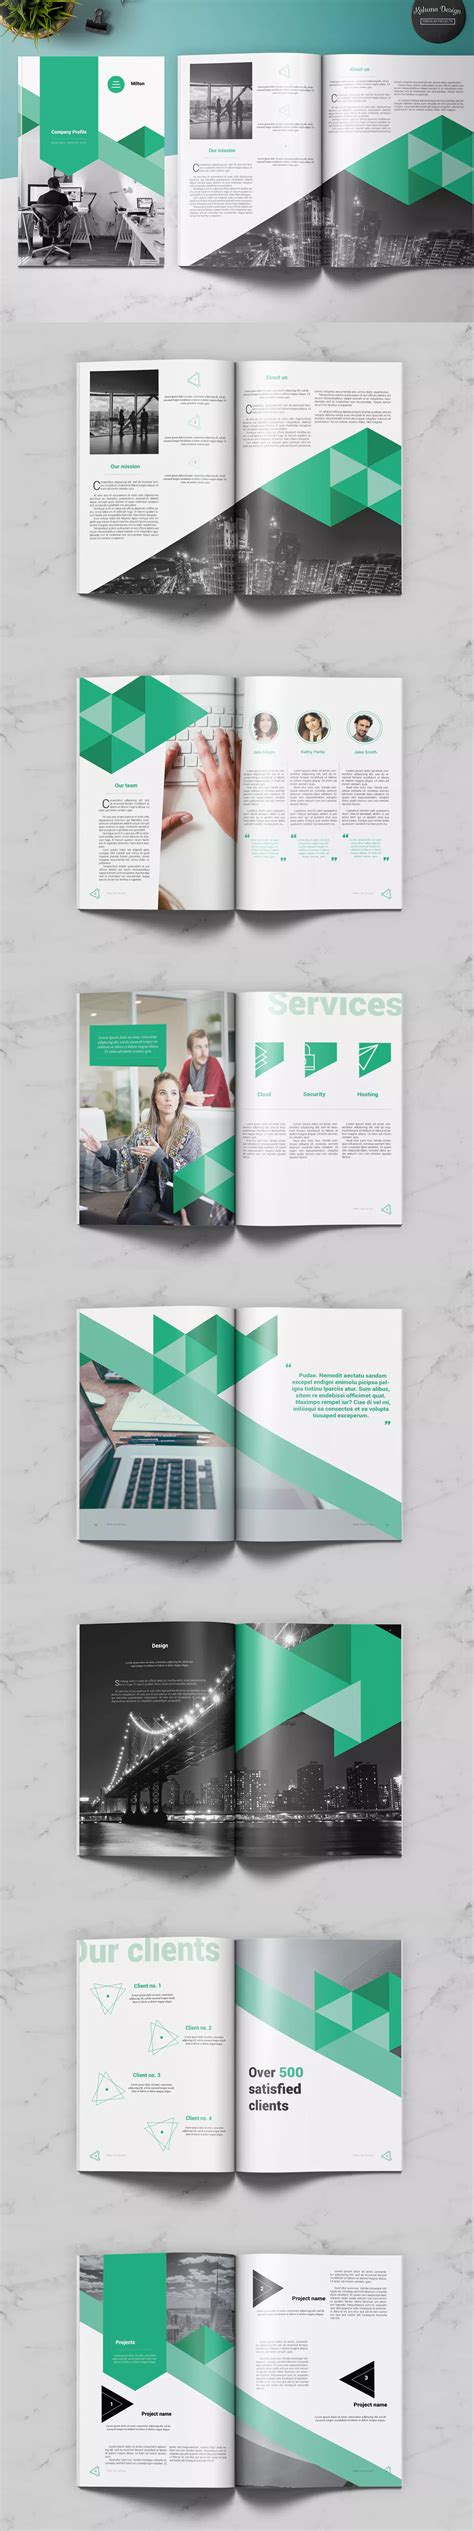 sle company profile template pdf interior design company profile template www indiepedia org